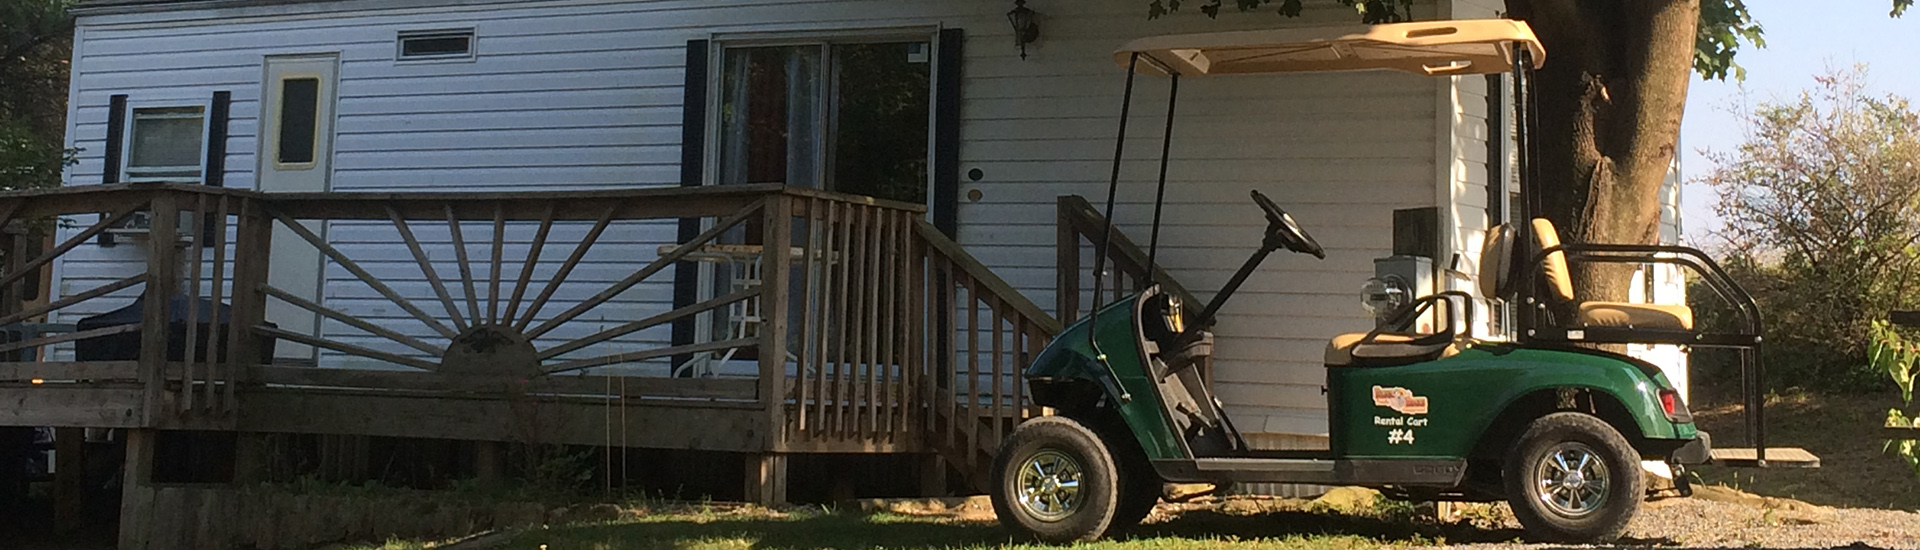 Golf cart parked in front of a cottage